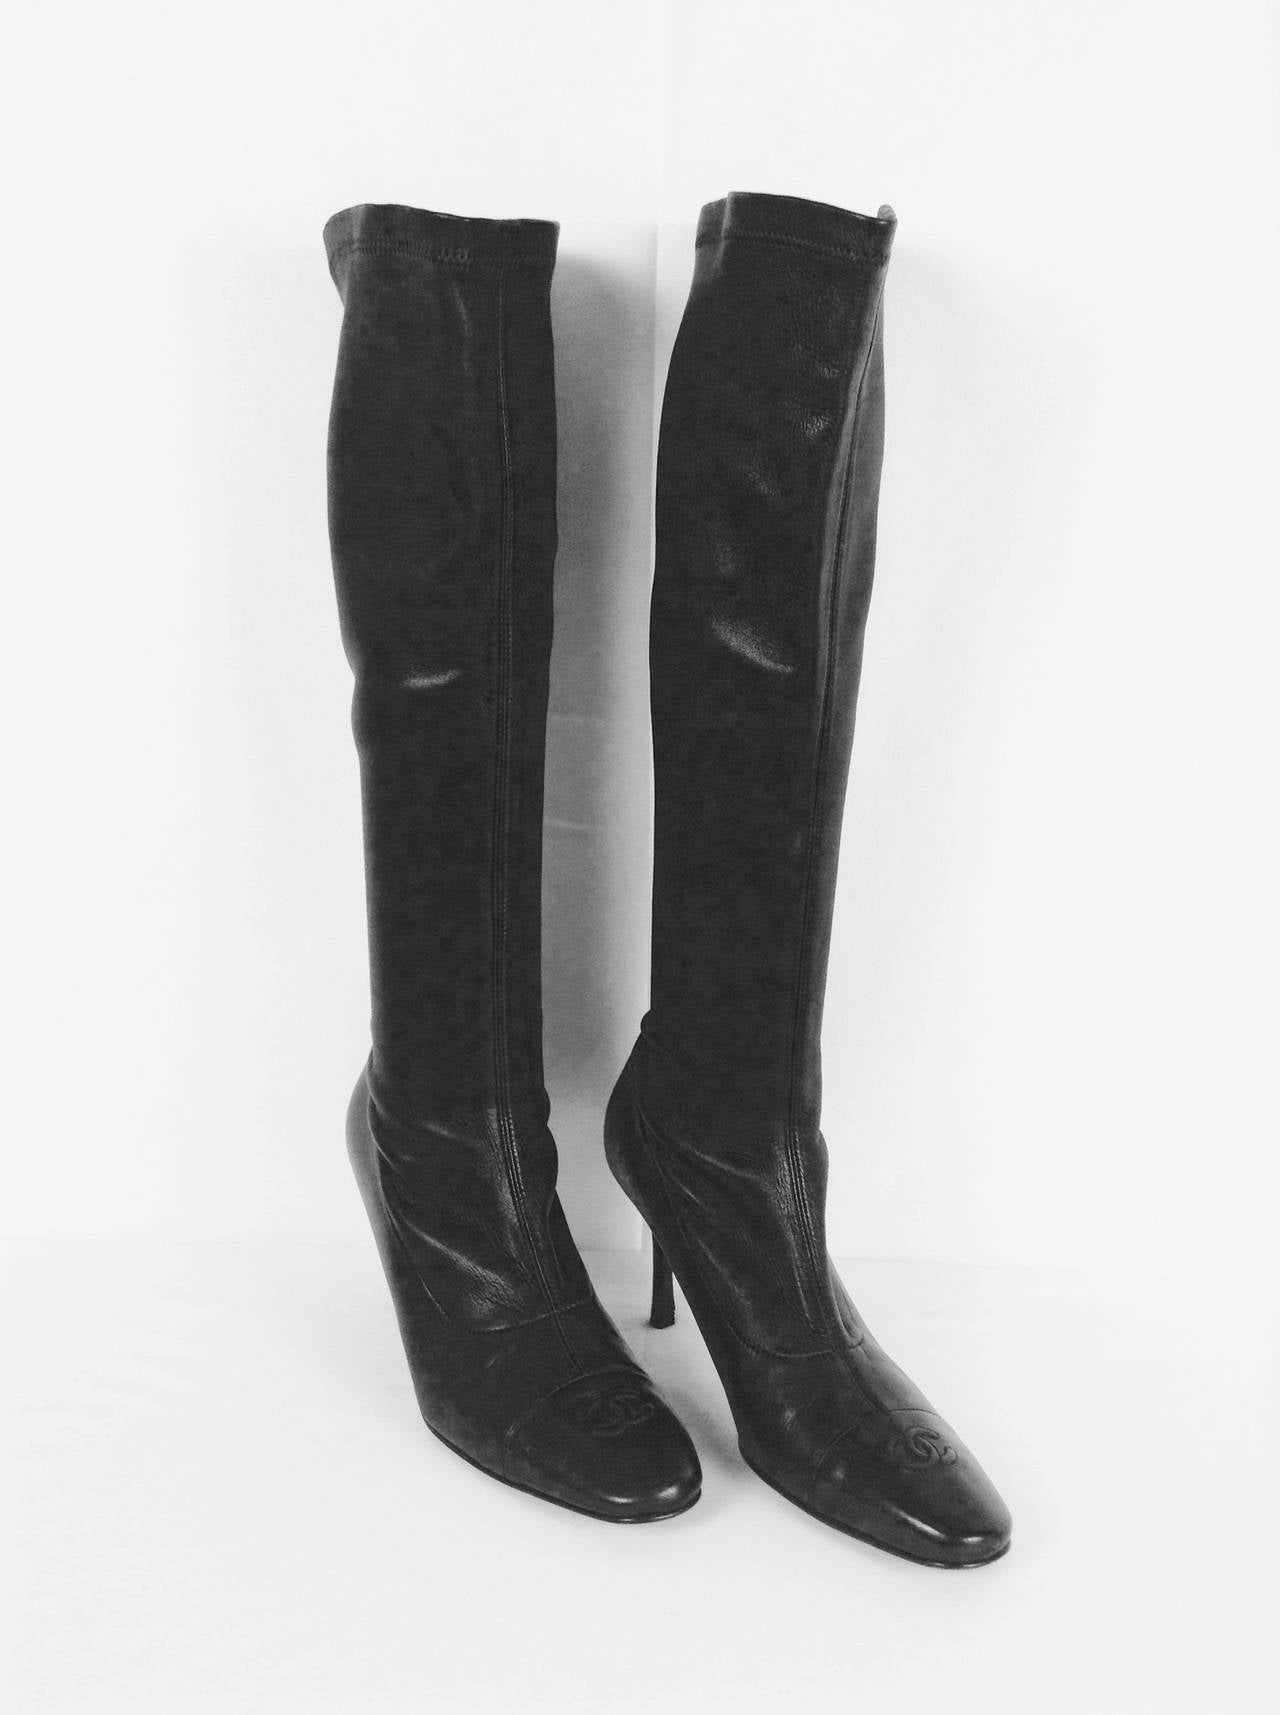 Chanel Black Stretch Leather High Heel Tall Boots at 1stdibs